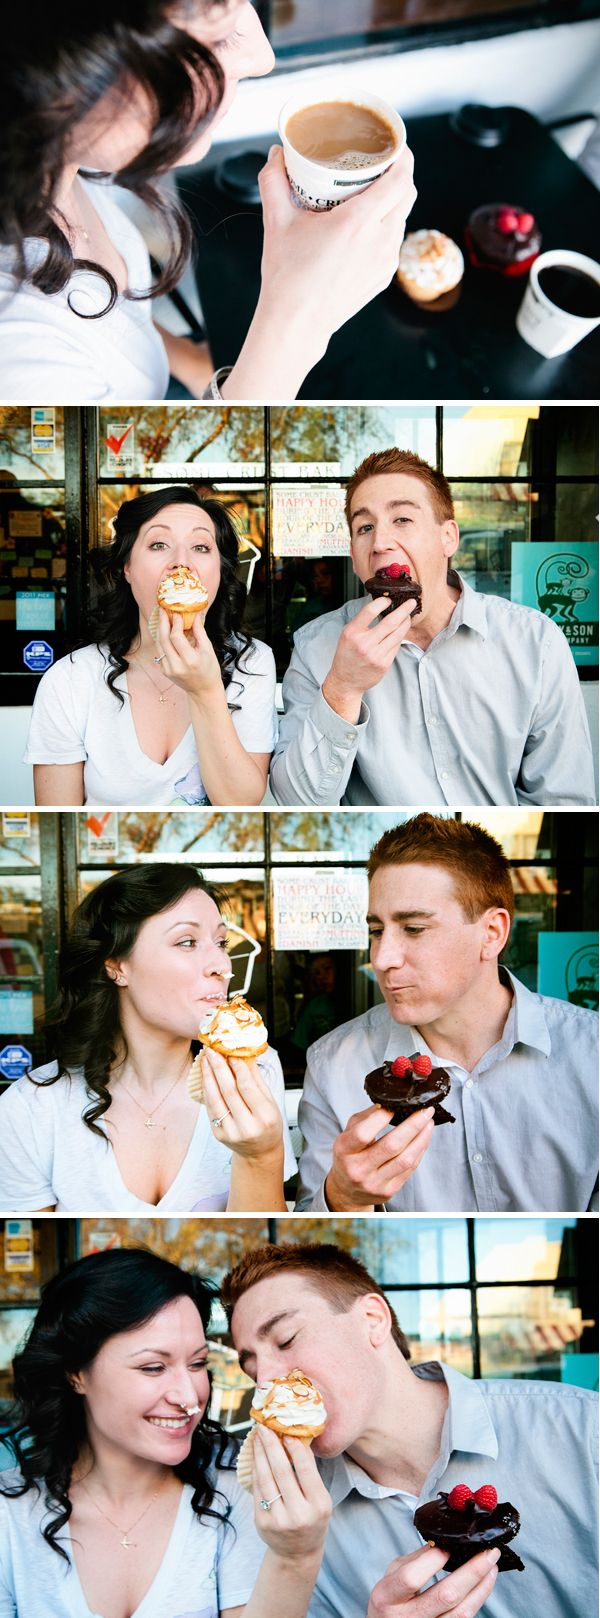 Cute cupcake engagement - Some Crust Bakery - http://studioelevenweddings.com/